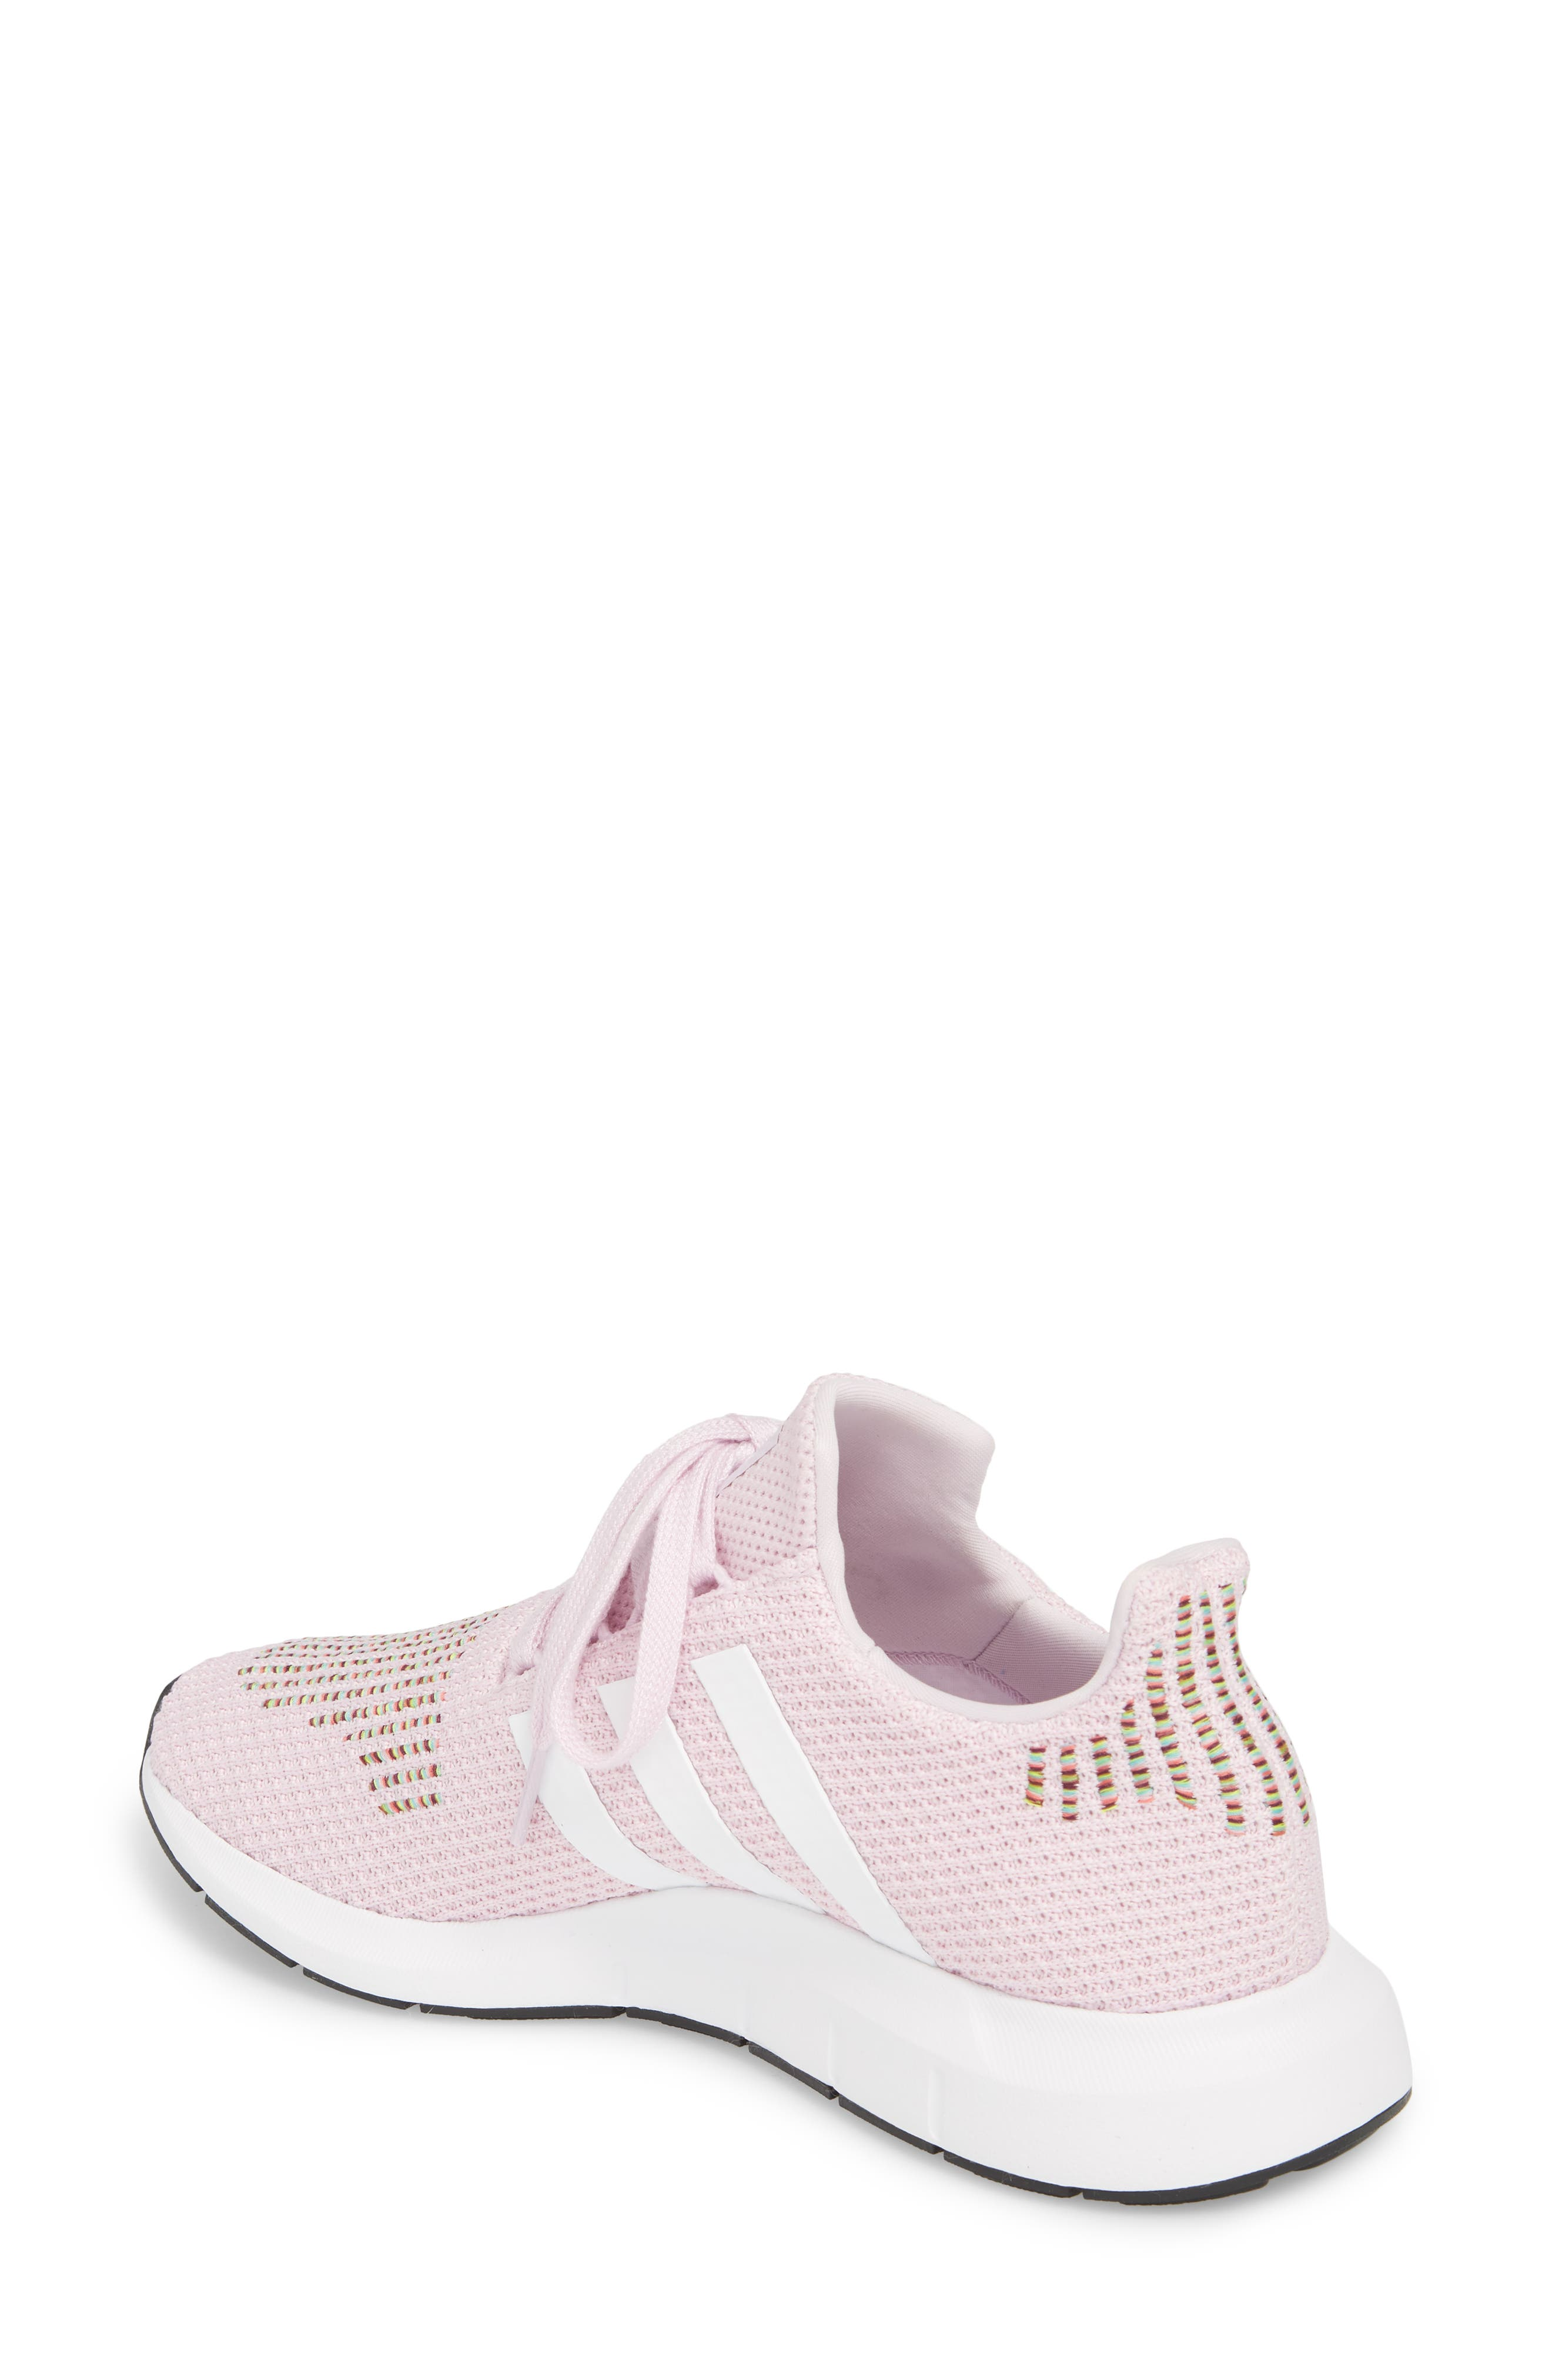 Swift Run Sneaker,                             Alternate thumbnail 2, color,                             Aero Pink/ White/ Core Black